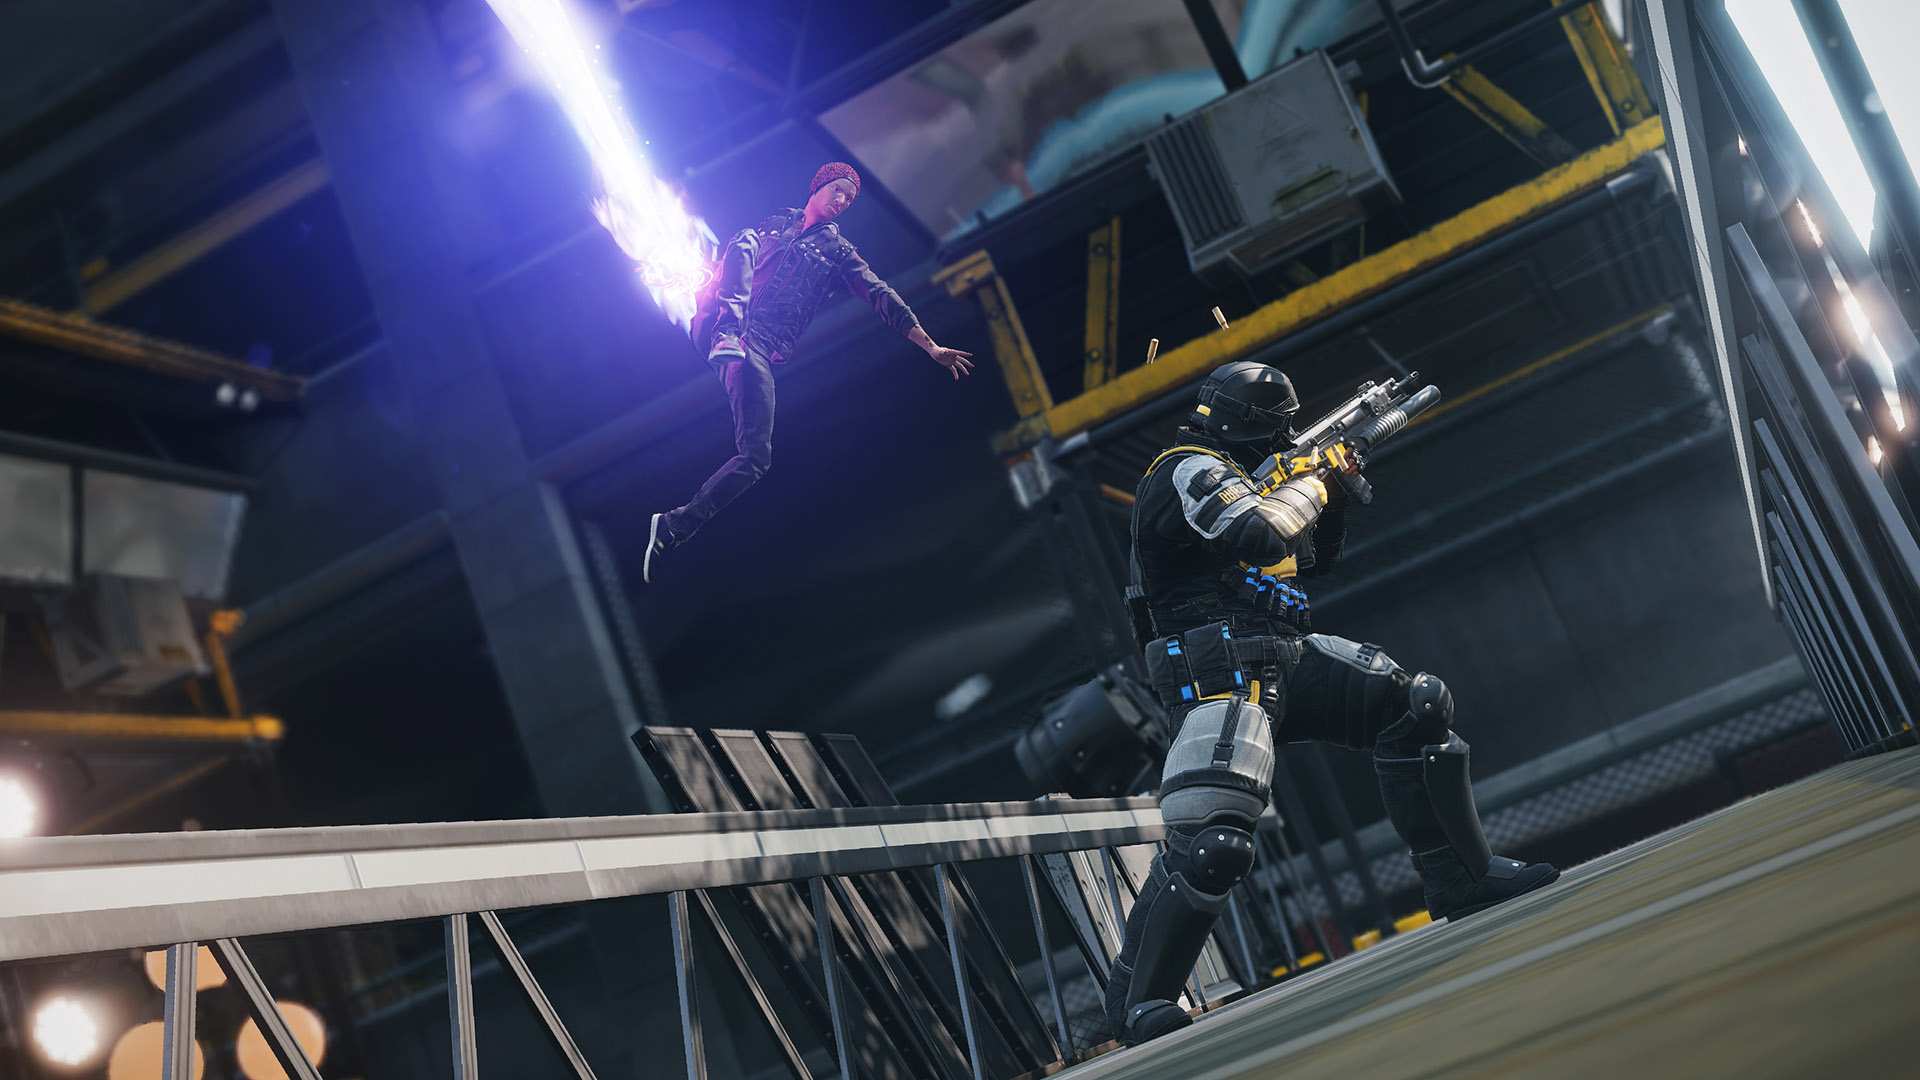 review_off_infamous2 (24)